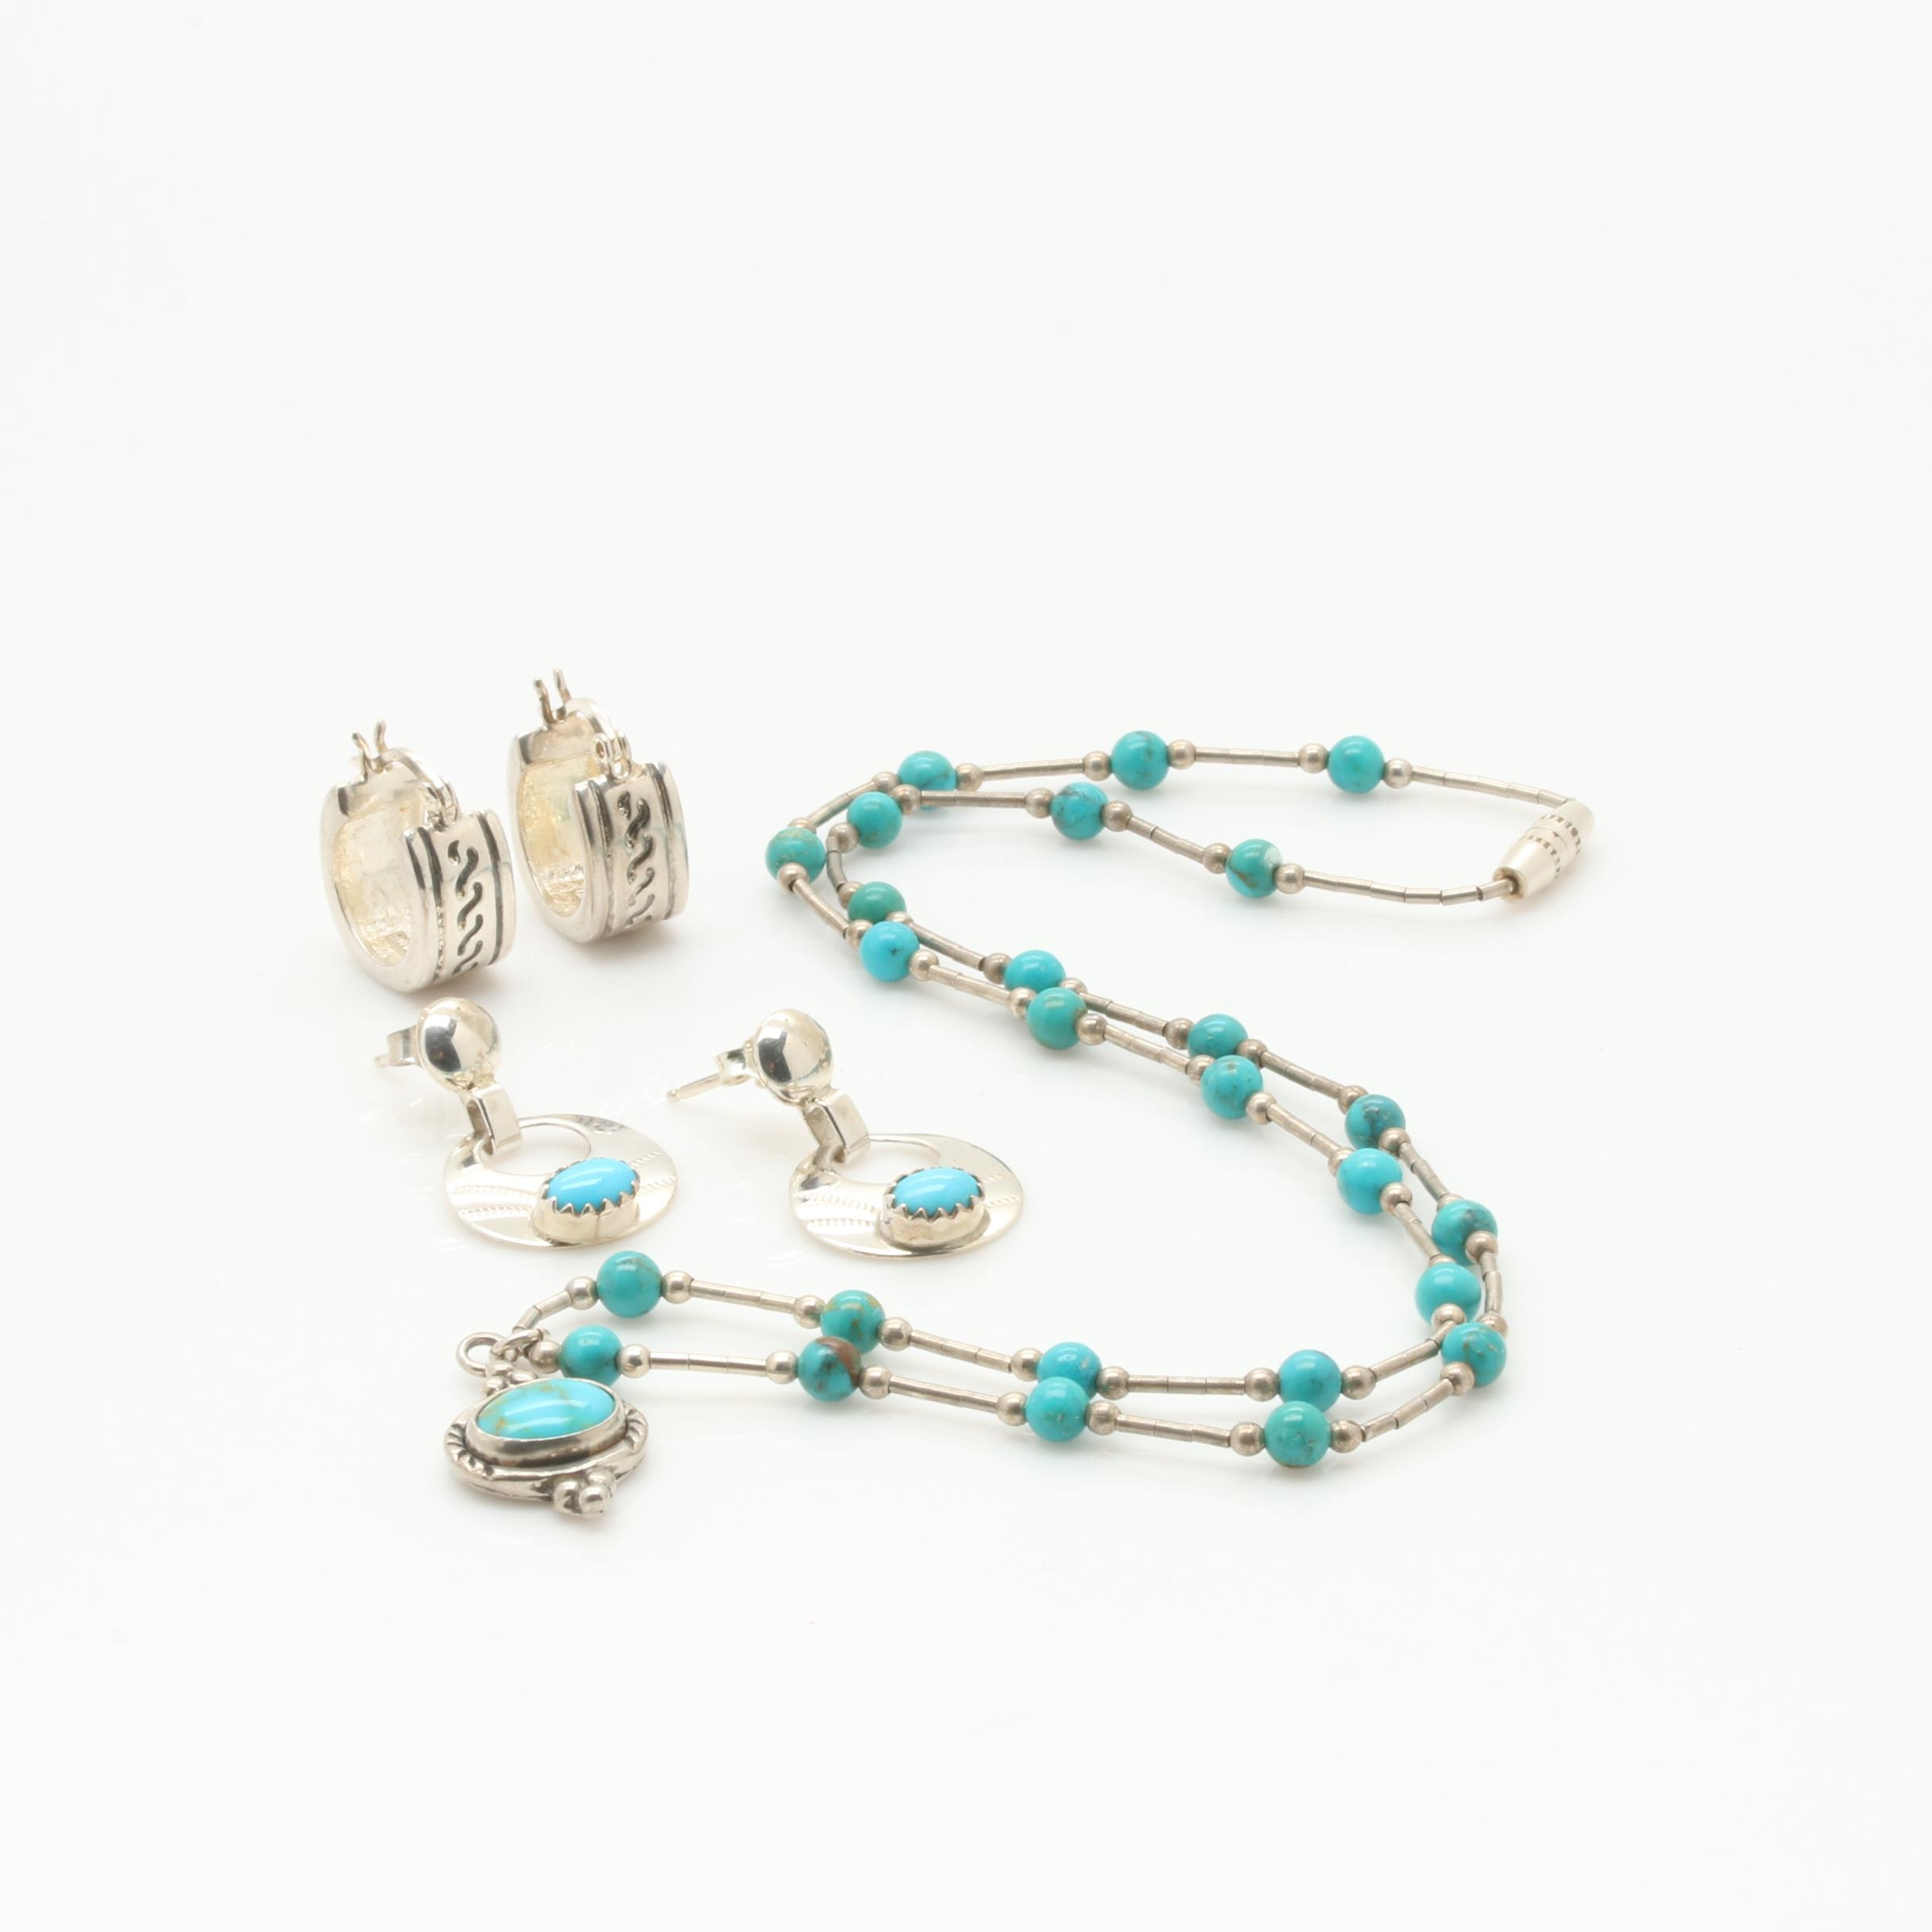 Sterling Silver Necklace and Earring Selection Featuring Turquoise